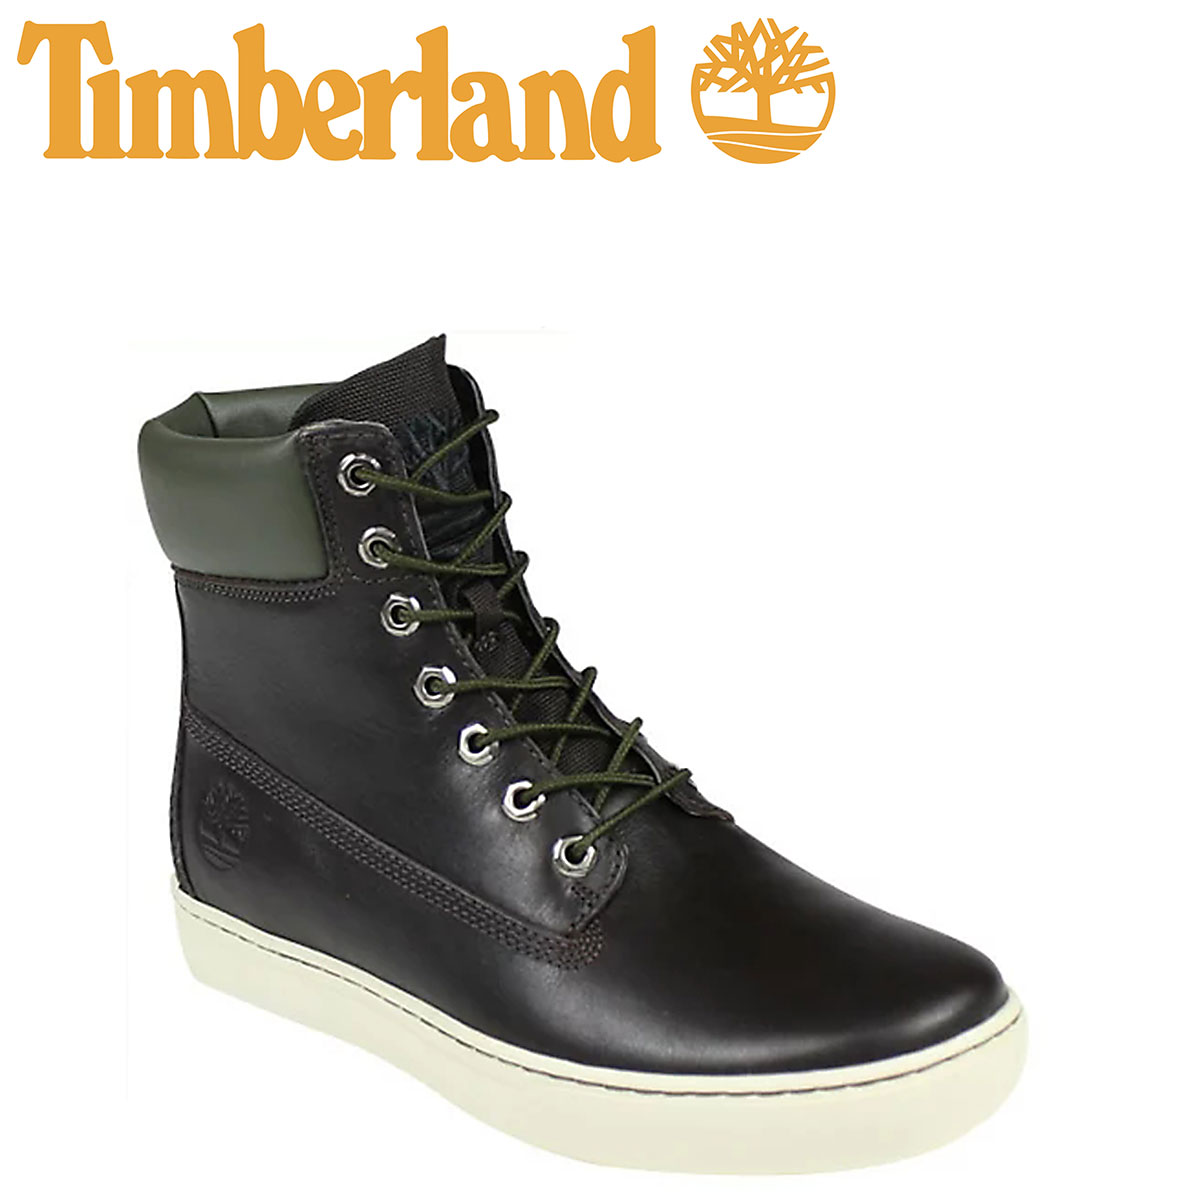 4b2cd124076b Timberland Newmarket Timberland cupsole 2.0 6 inch boots NEWMARKET 2.0  CUPSOLE 6 INCH BOOT leather men s 6810A Burke × green  1   9 new in stock    regular  ...